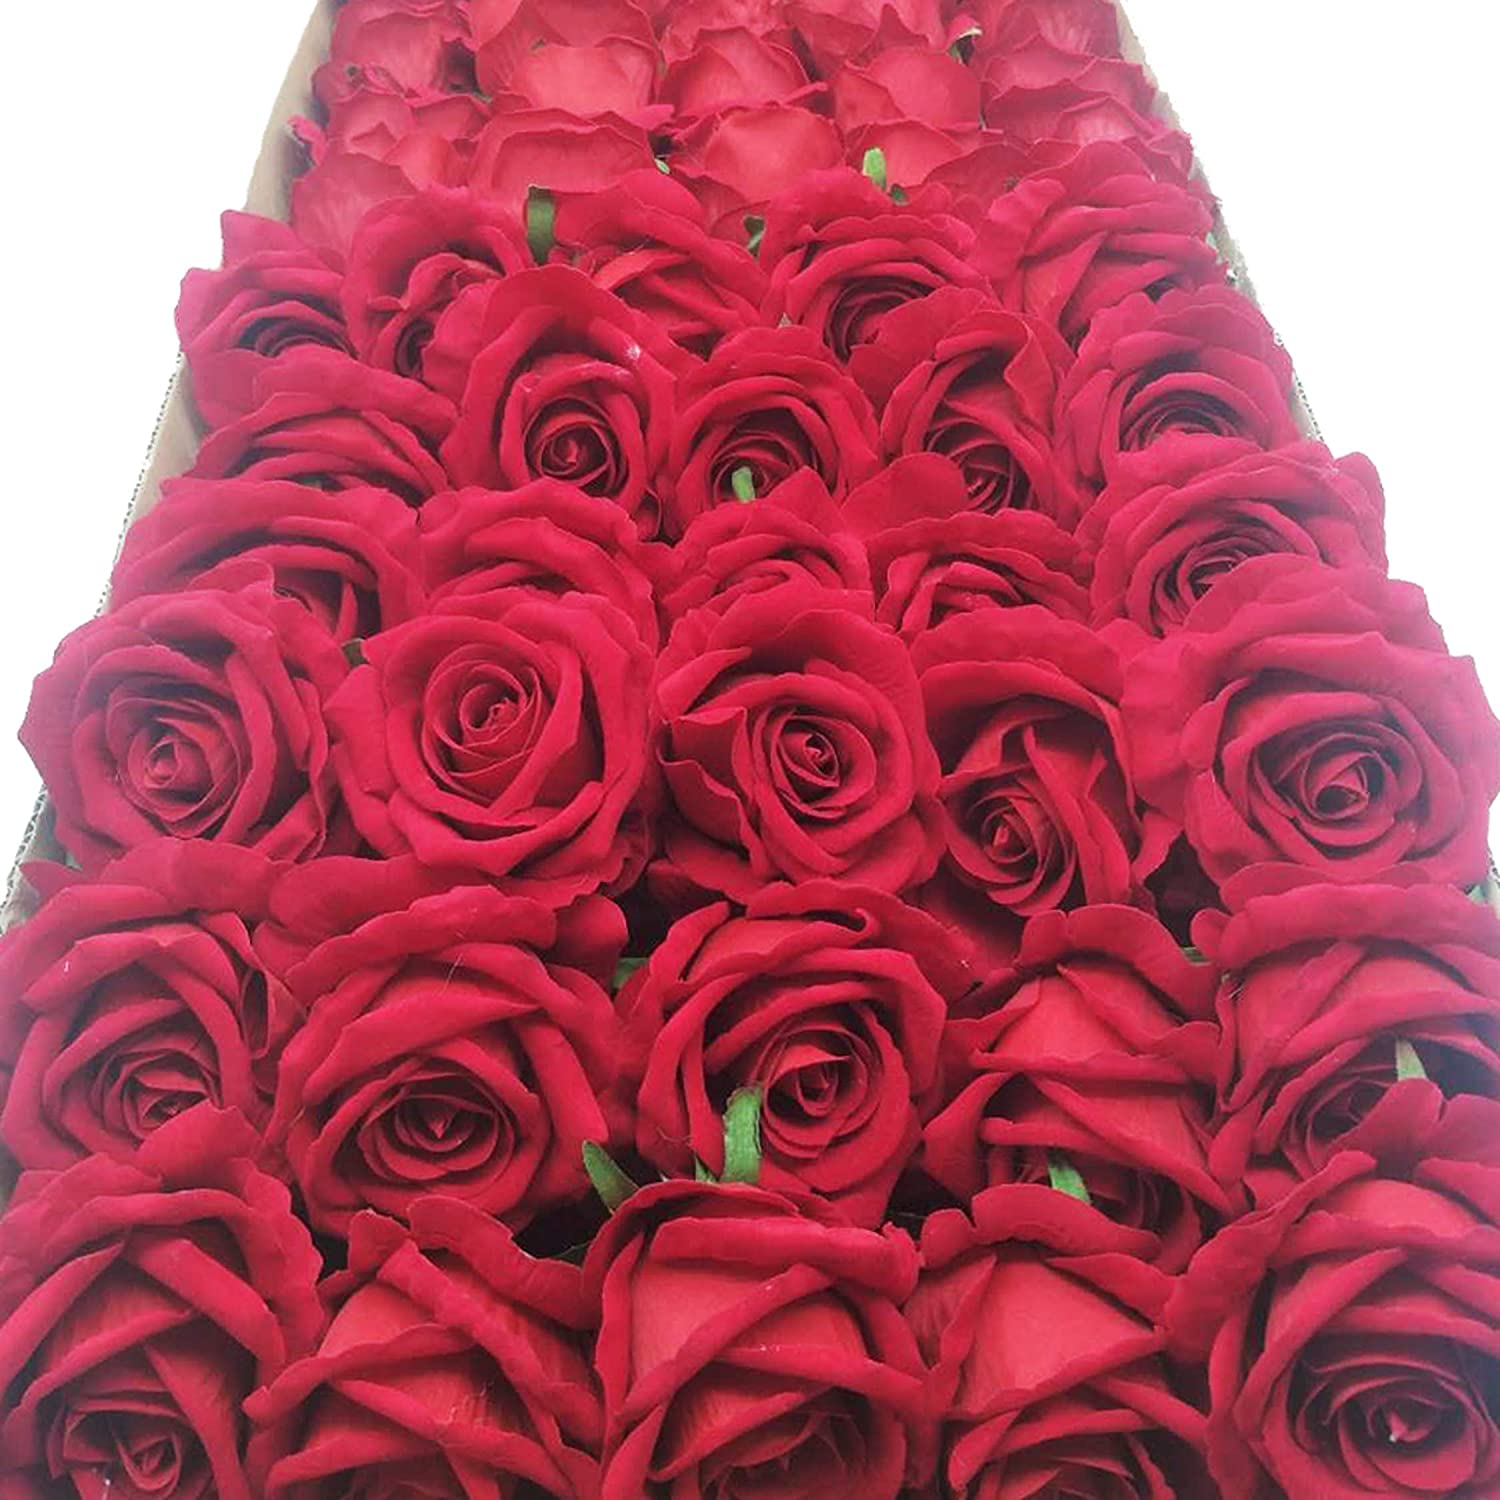 cn-Knight Artificial Flower in Bulk Wholesale 20pcs 10'' Velvet Silk Rose with Wire Stem Real Looking Fake Flower for Wedding Bouquet Bridal Shower Home Décor Flower Wall Hair Flower Hat Trim (Red)